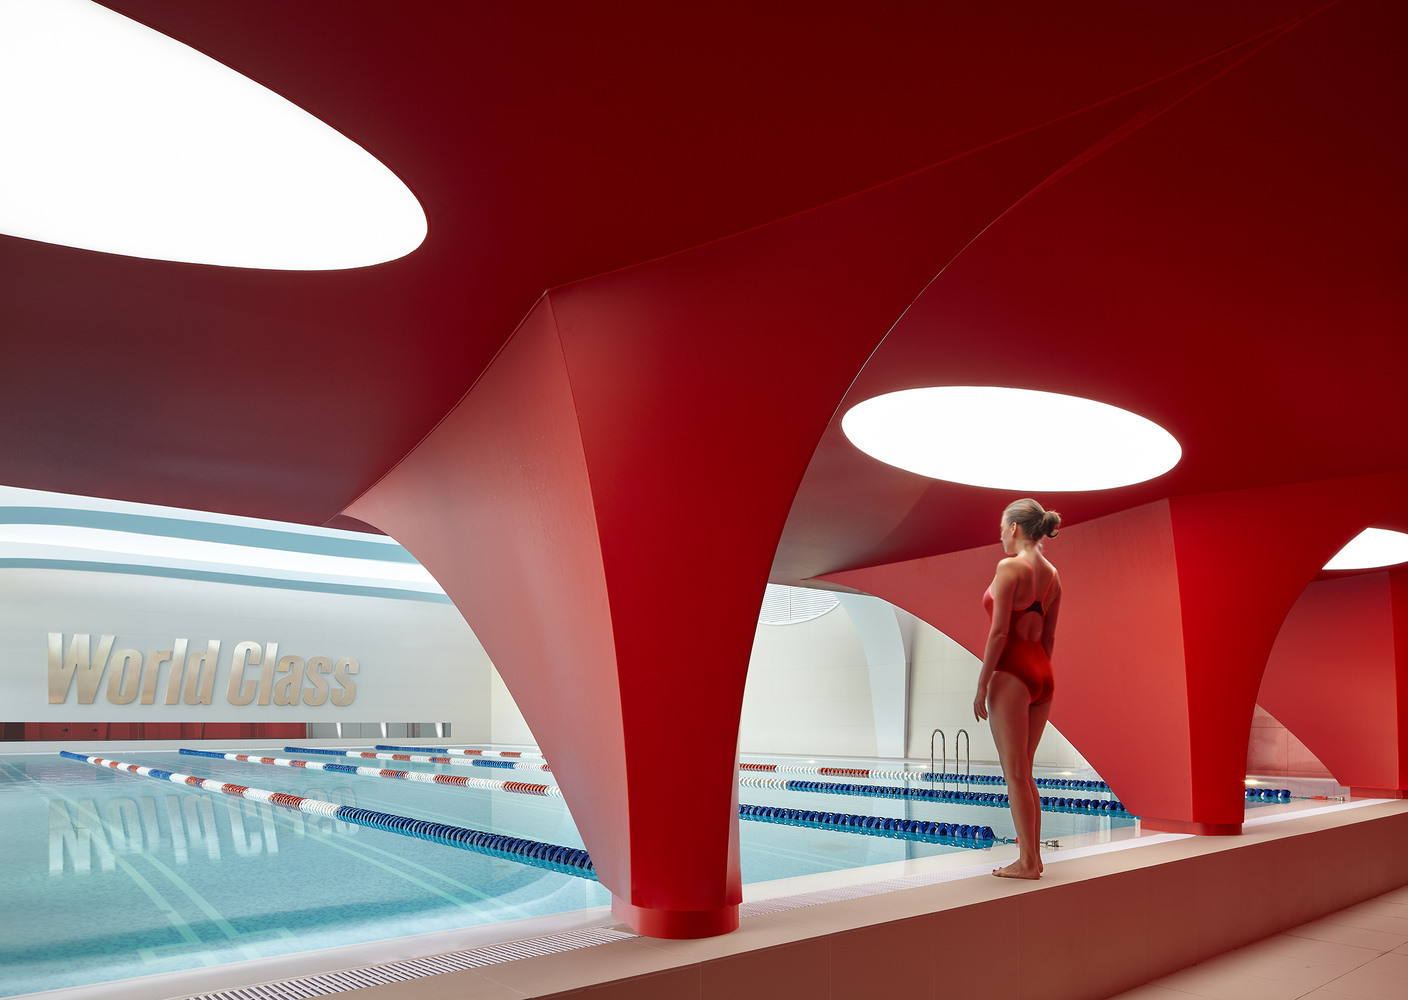 WORLD CLASS Olympic / VOX Architects